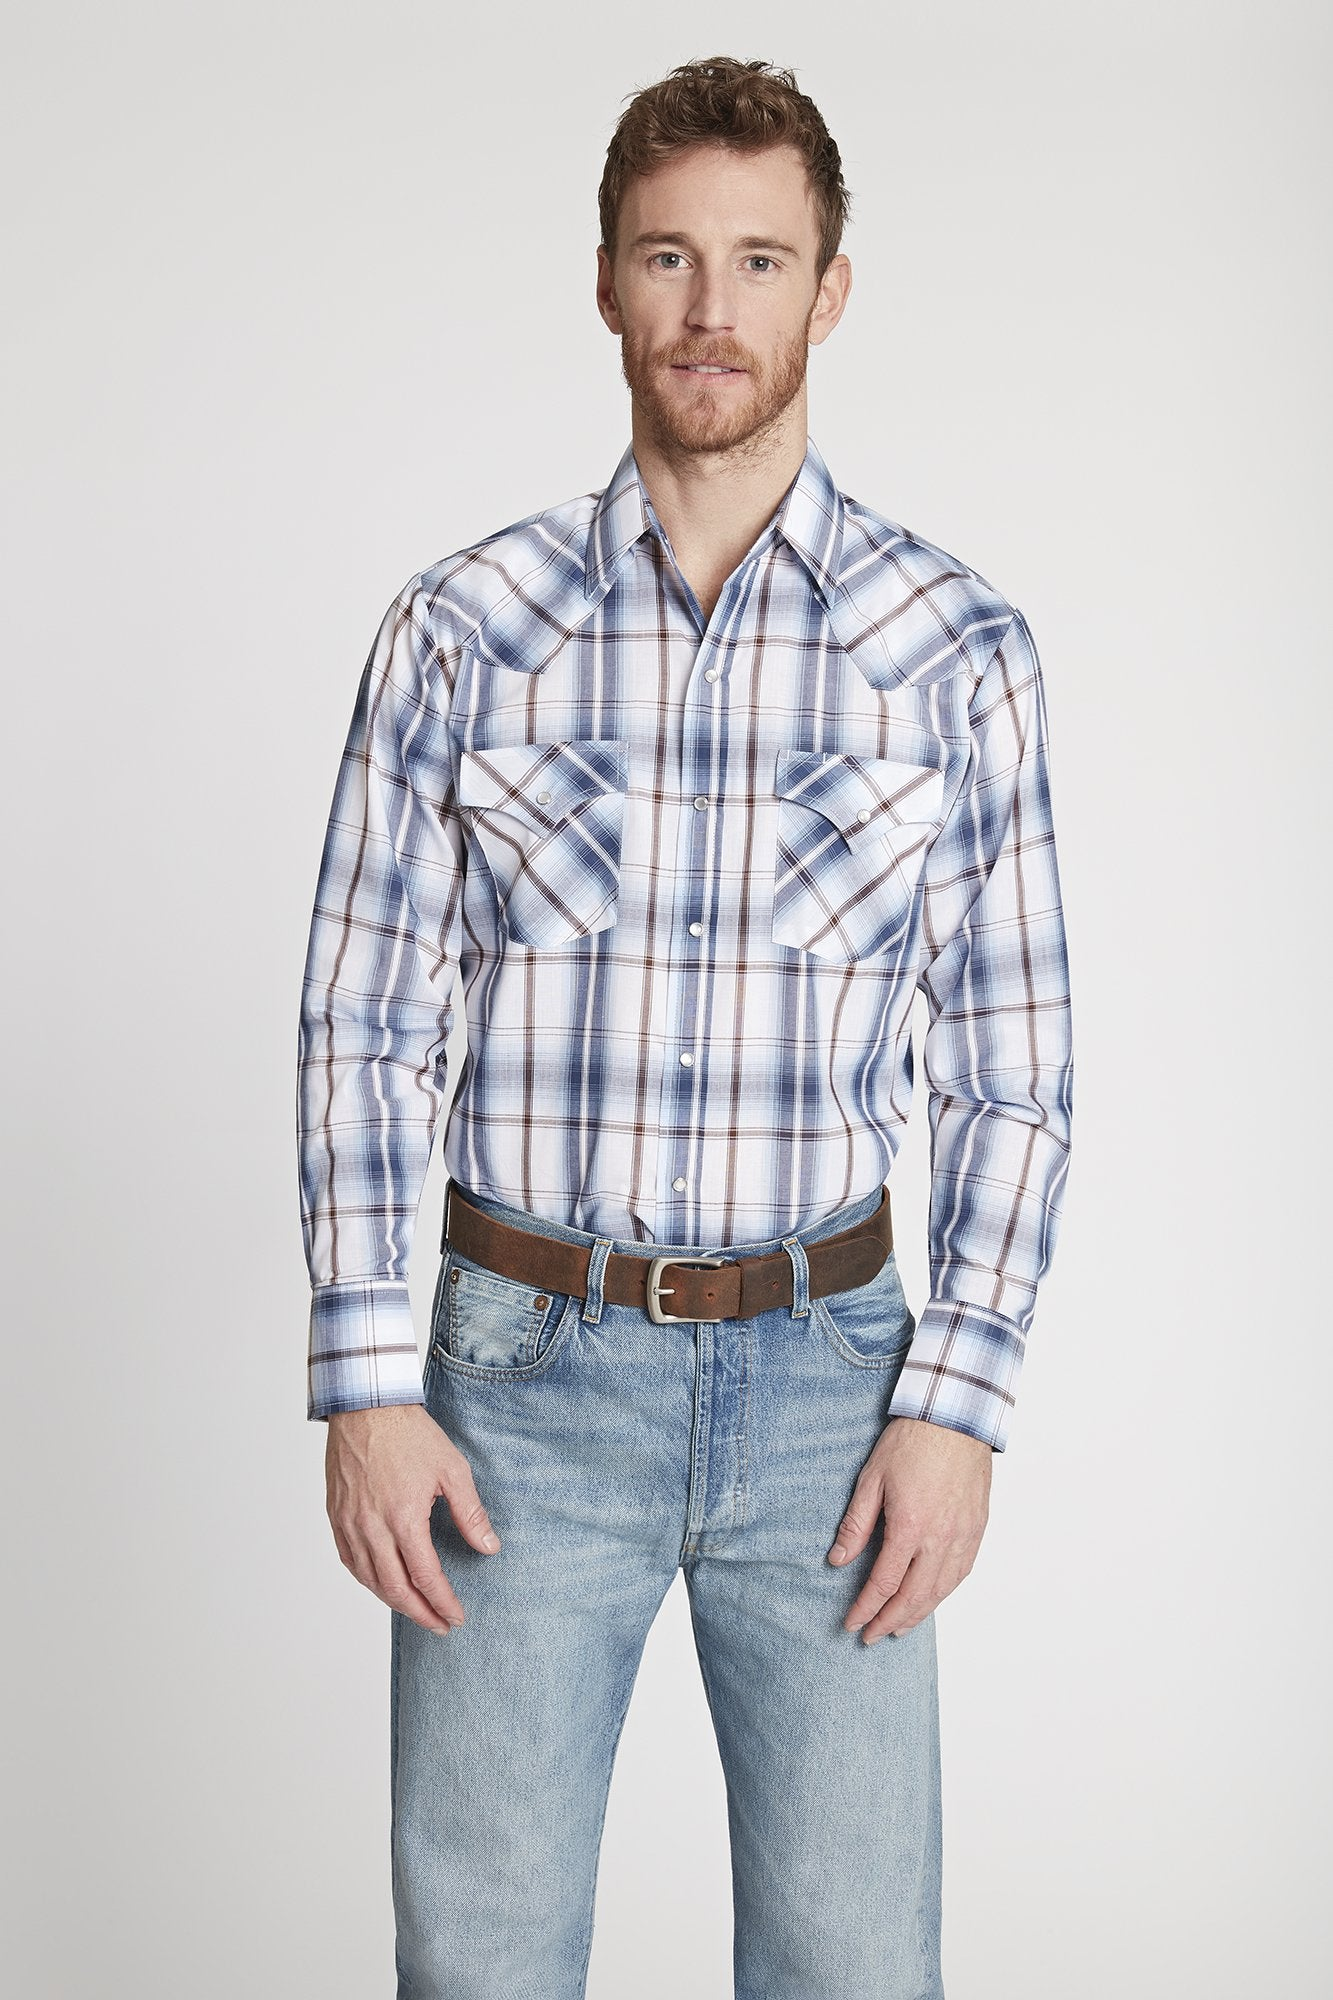 Men's Long Sleeve Chambray Plaid Shirt in Chambray Plaid